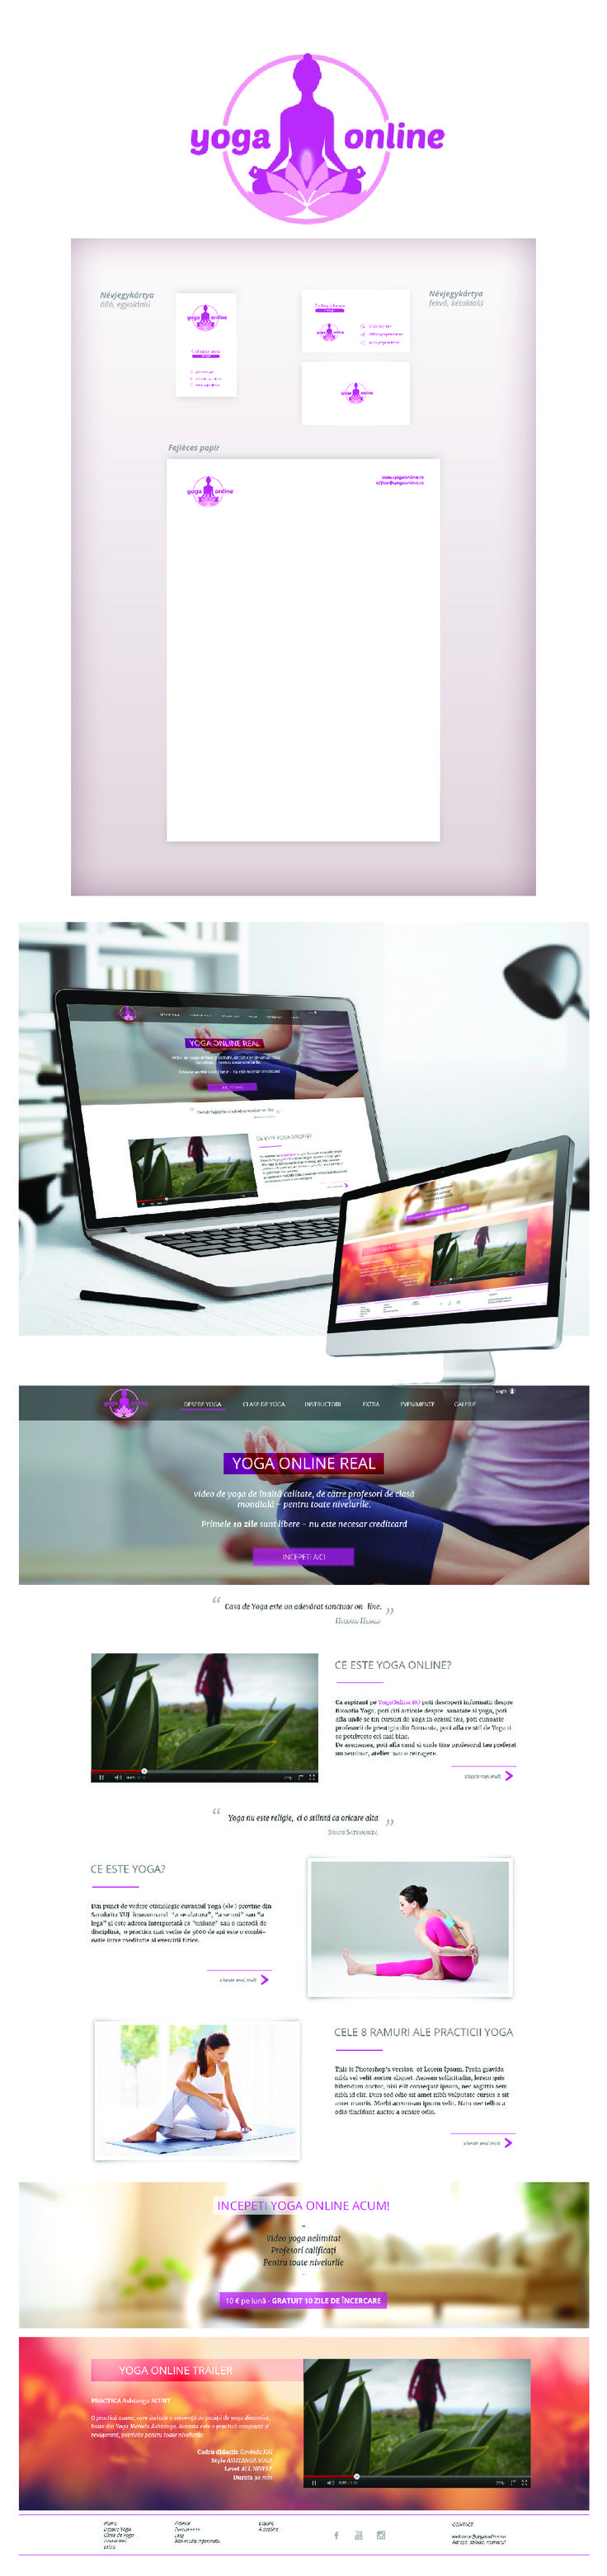 Logo - Business card - Header - Website design - Yoga Online, Romania #1 online yoga community